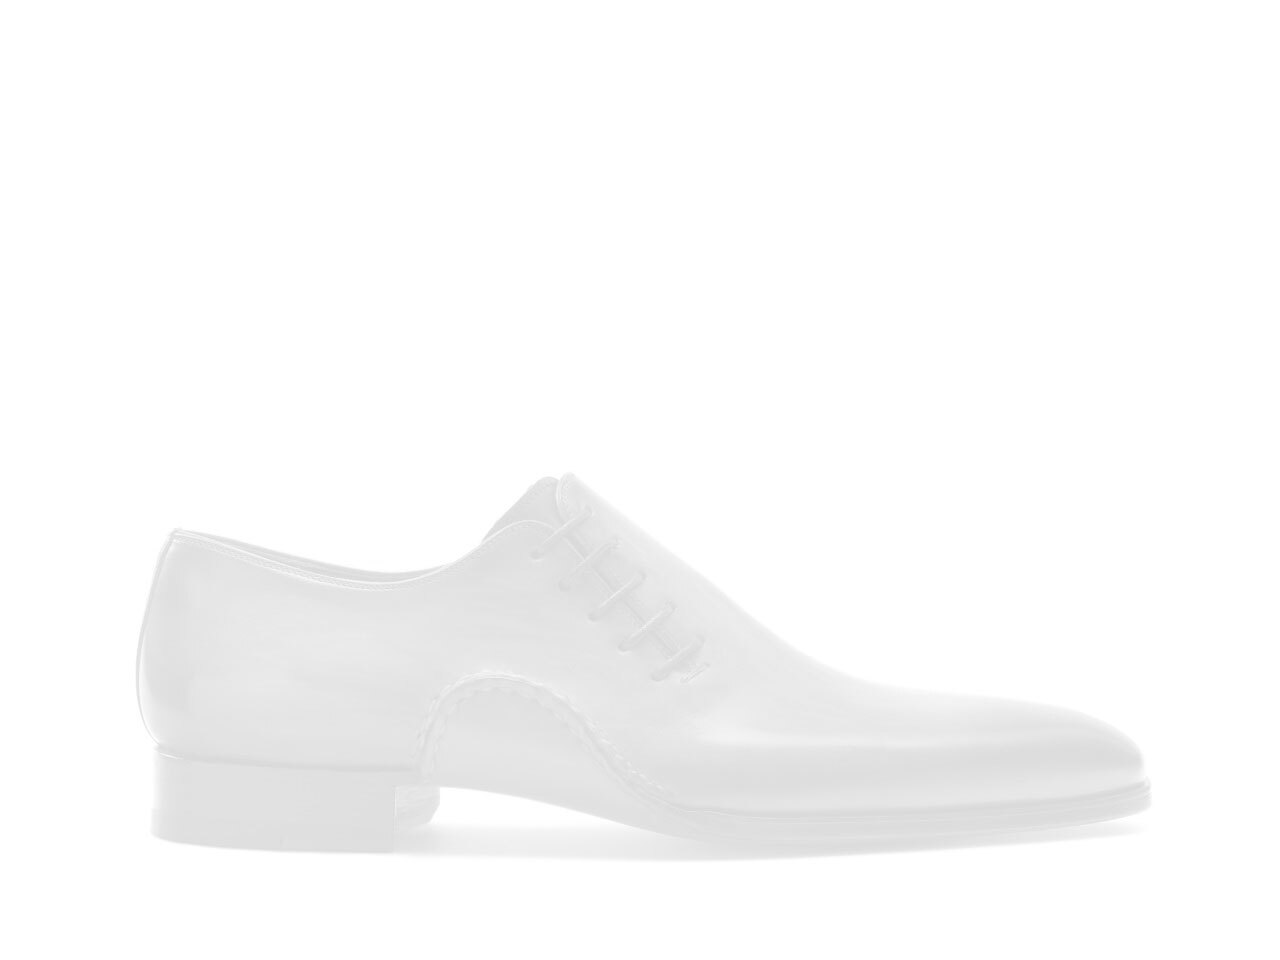 Sole of the Magnanni Ecija Navy Men's Sneakers